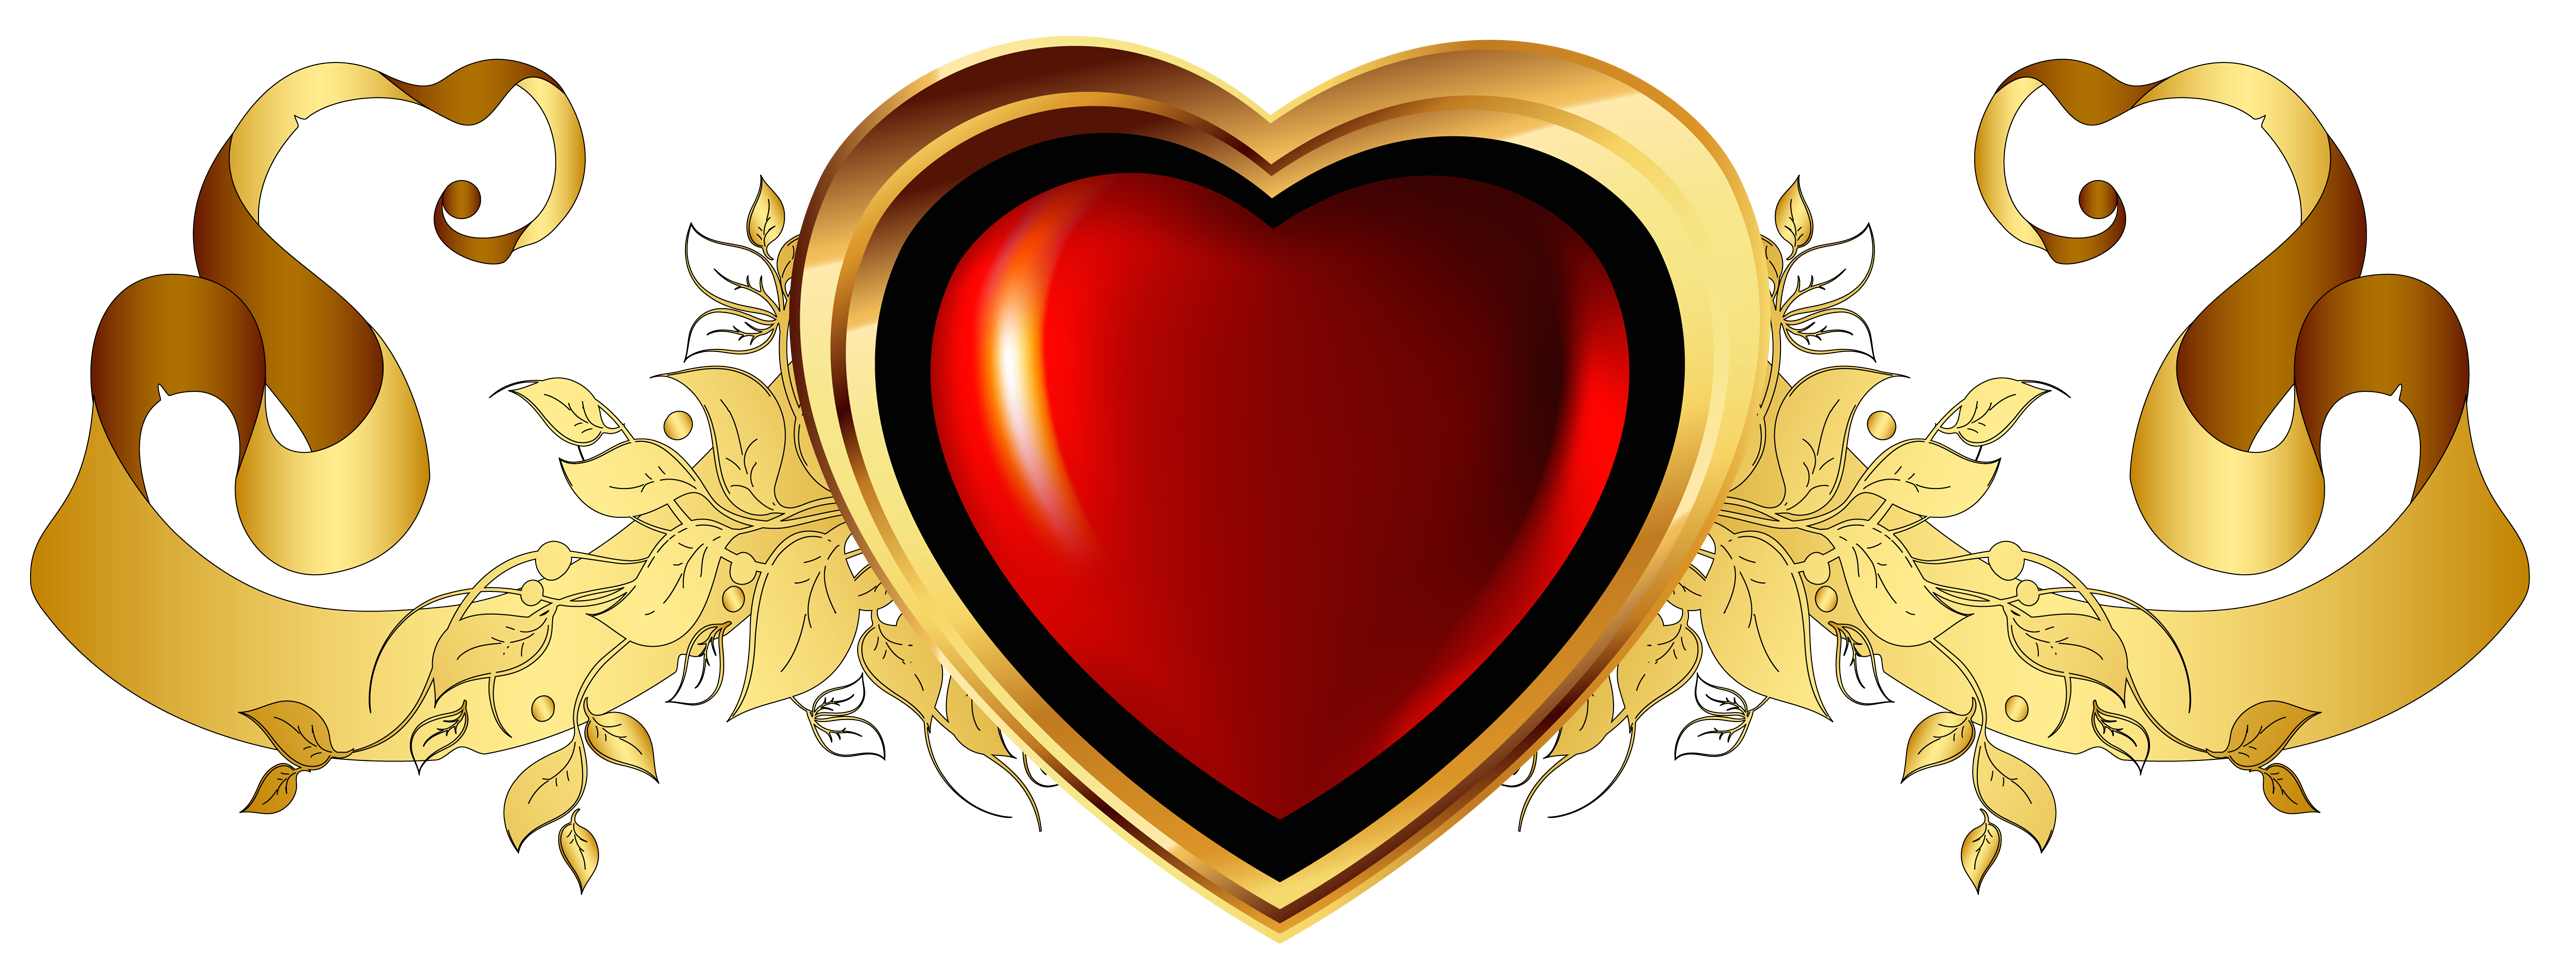 Heart banner png. Large red with gold